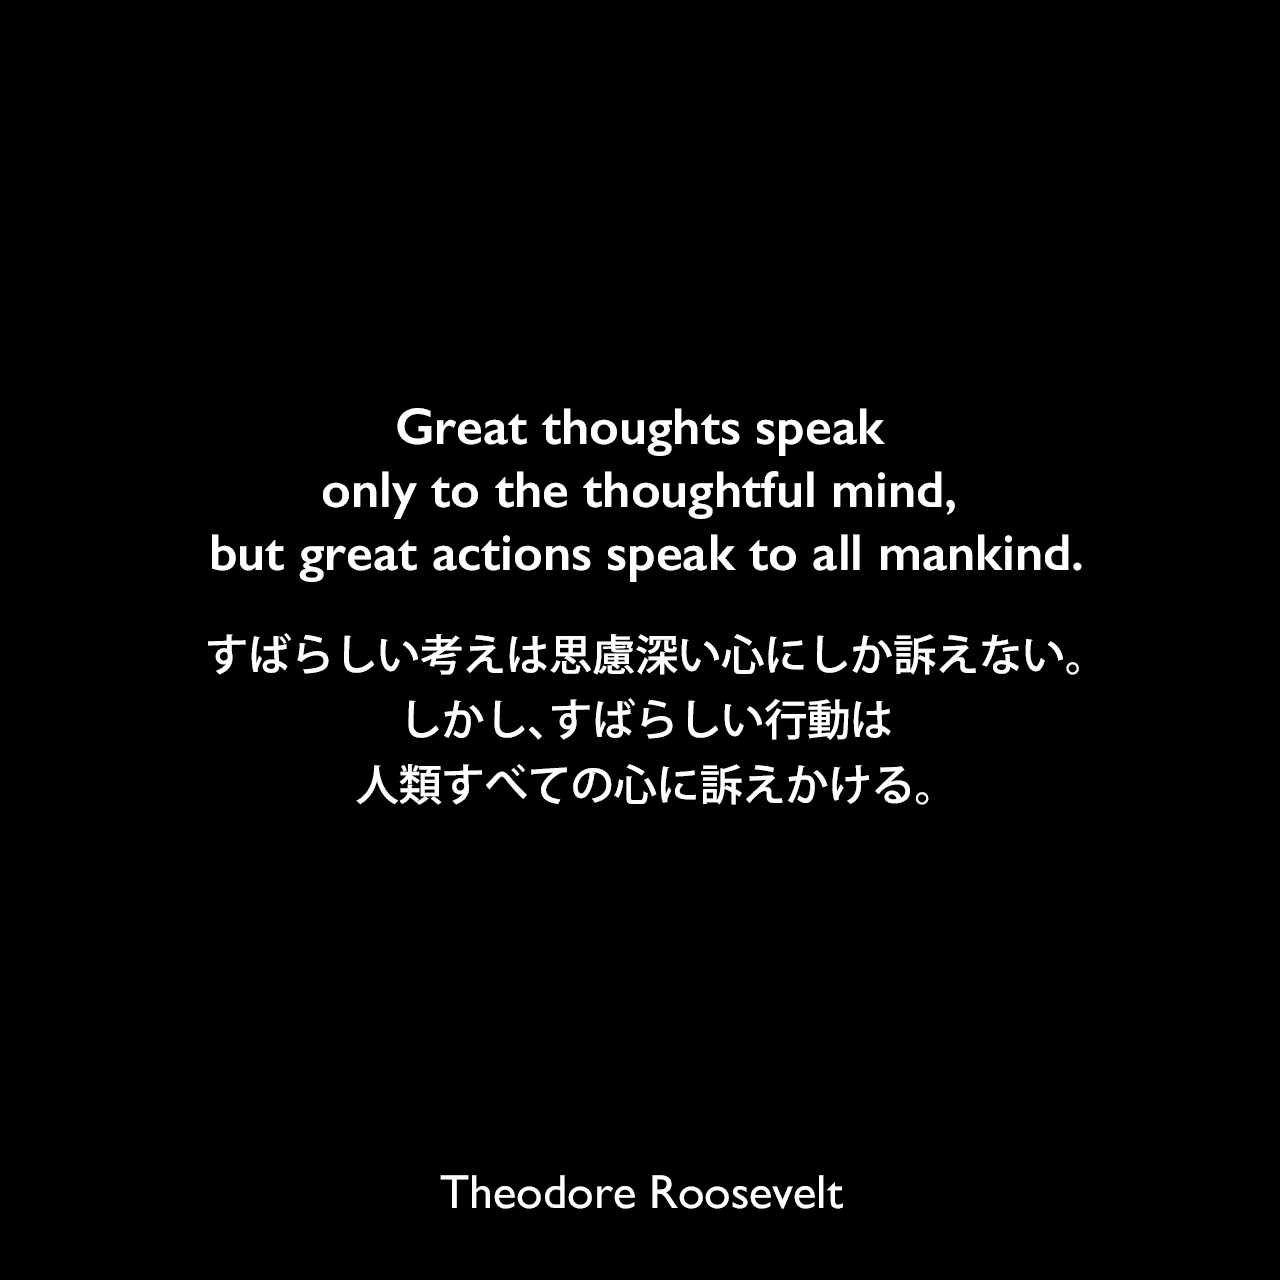 Great thoughts speak only to the thoughtful mind, but great actions speak to all mankind.すばらしい考えは思慮深い心にしか訴えない。しかし、すばらしい行動は人類すべての心に訴えかける。Theodore Roosevelt